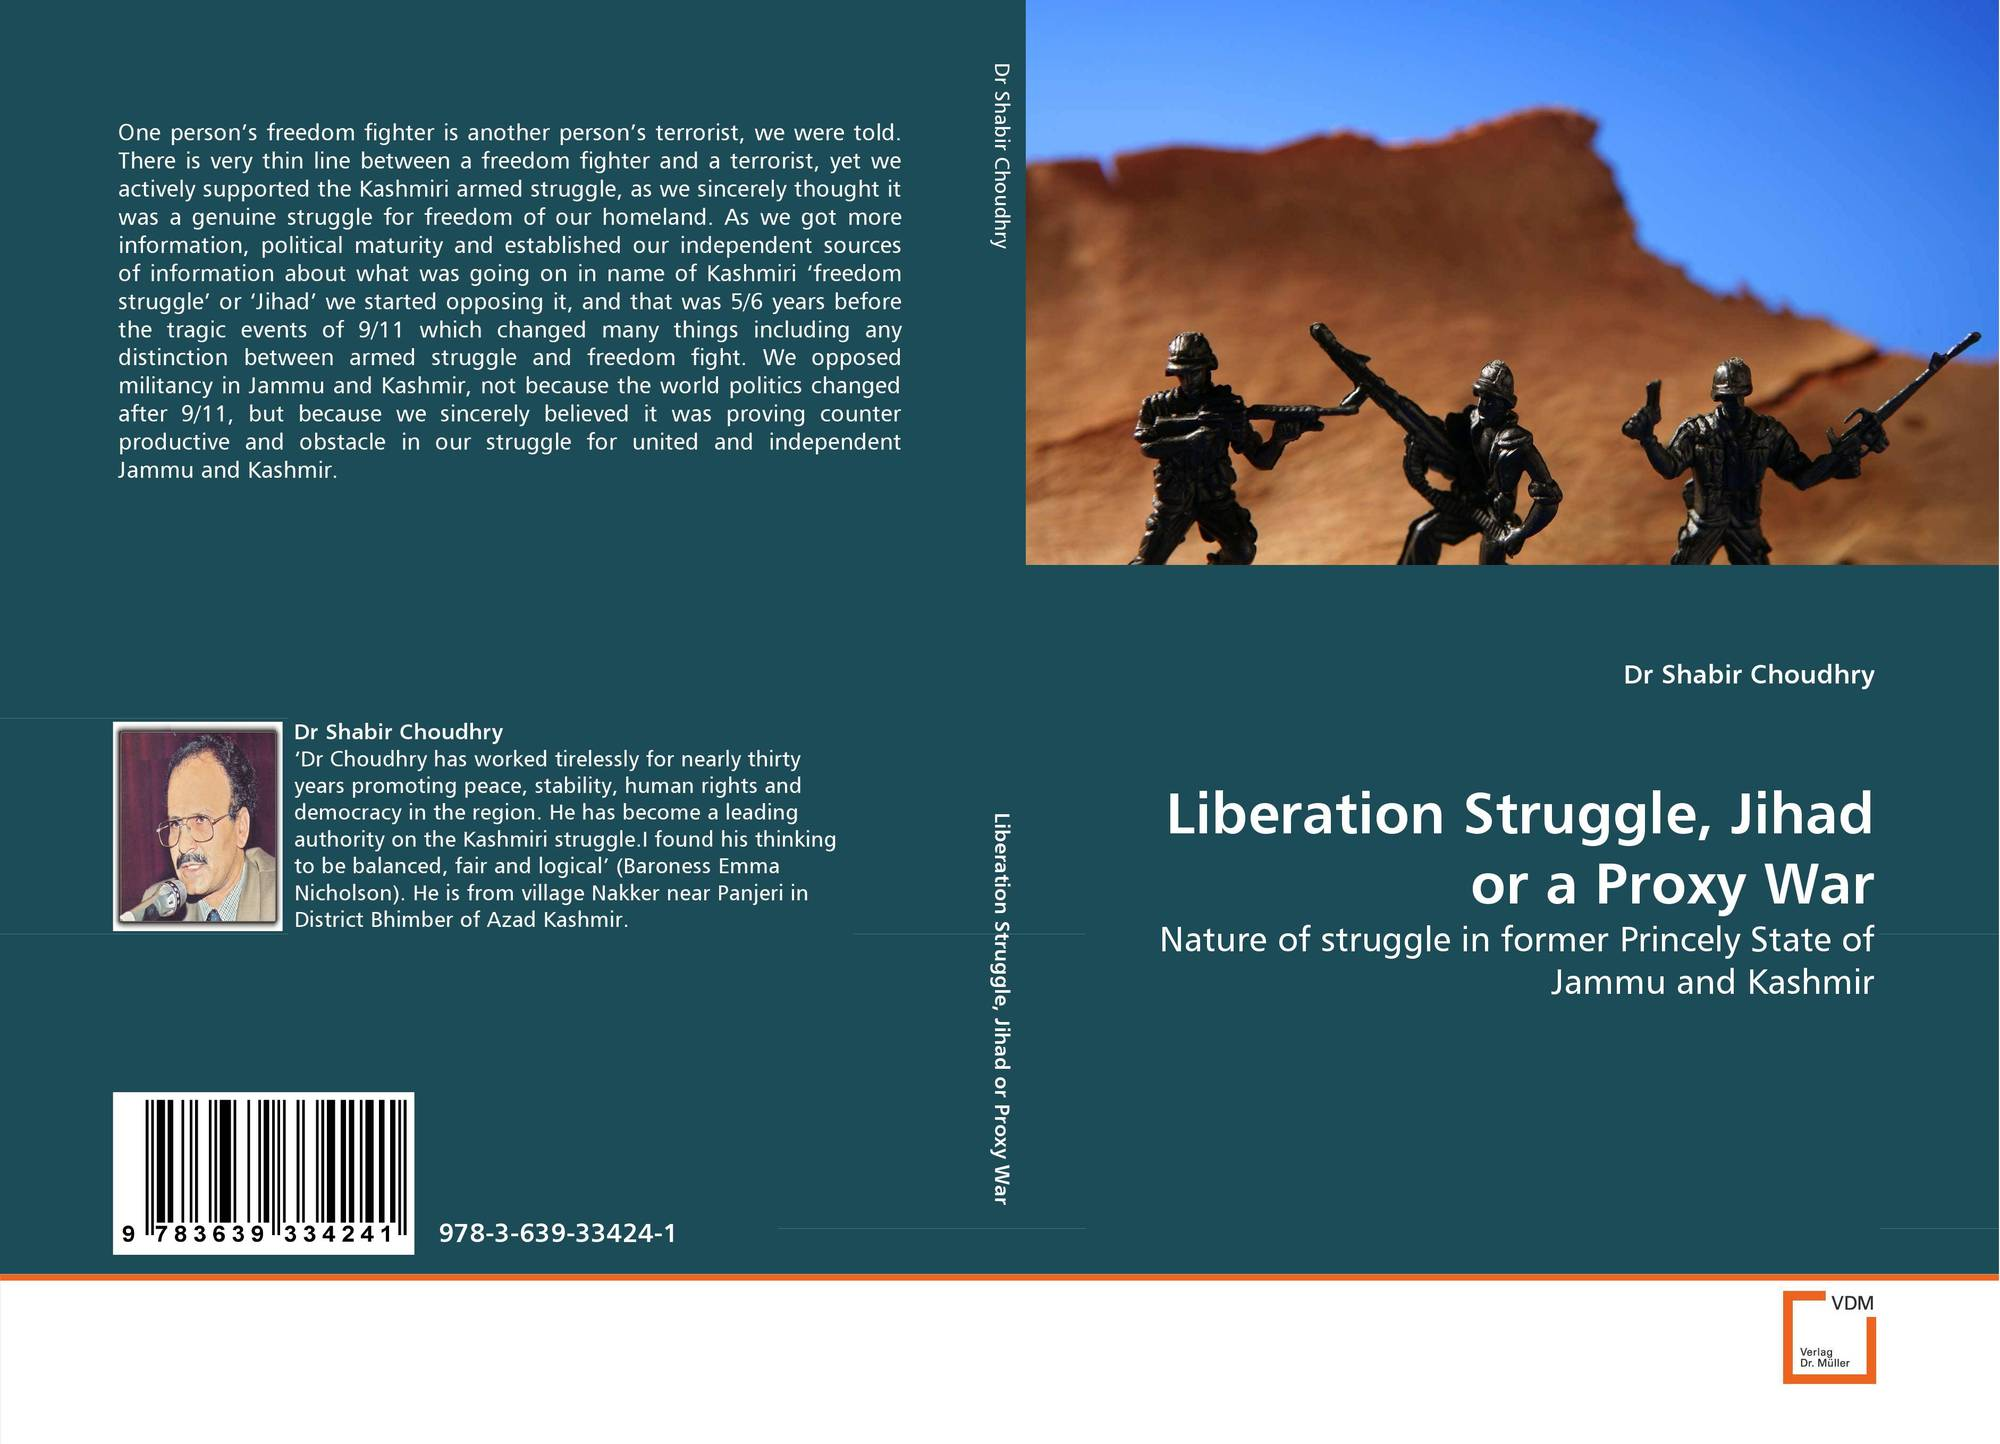 one man s terrorist is another man s freedom fighter 'one man's terroist is another's freedom fighter' the definitions between a terrorist group and a freedom fighter significantly change justifications and perceptions of armed movements.